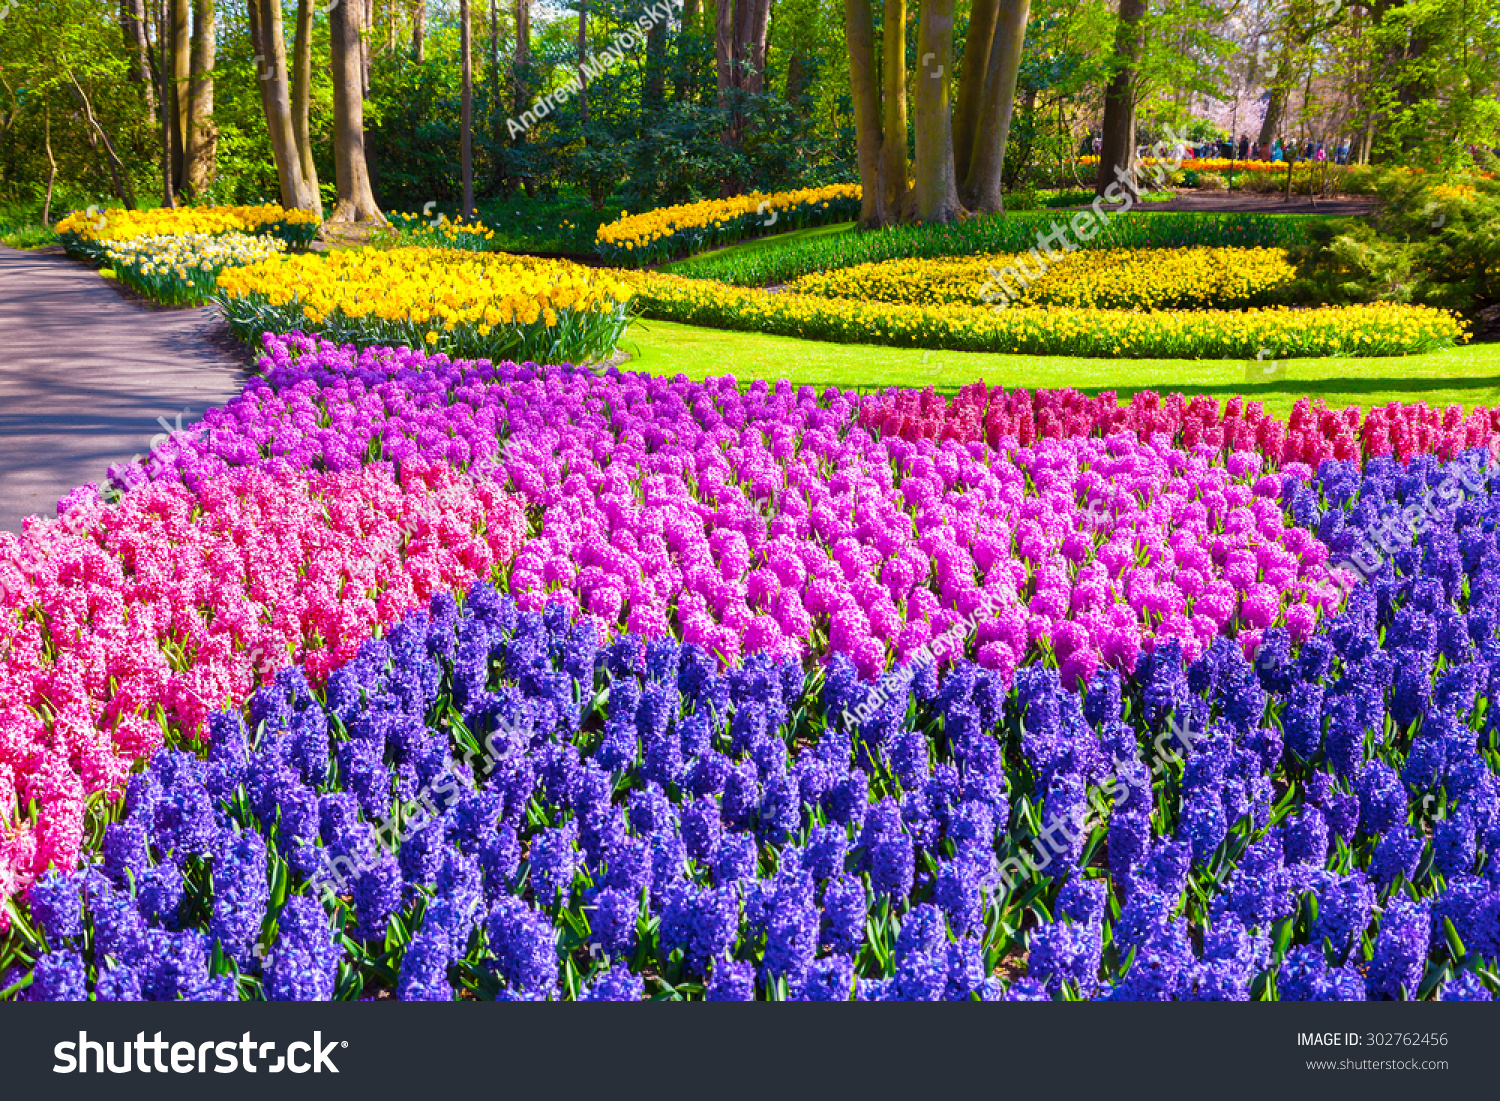 marvellous hyacinth flowers in the keukenhof park used as background beautiful outdoor scenery in